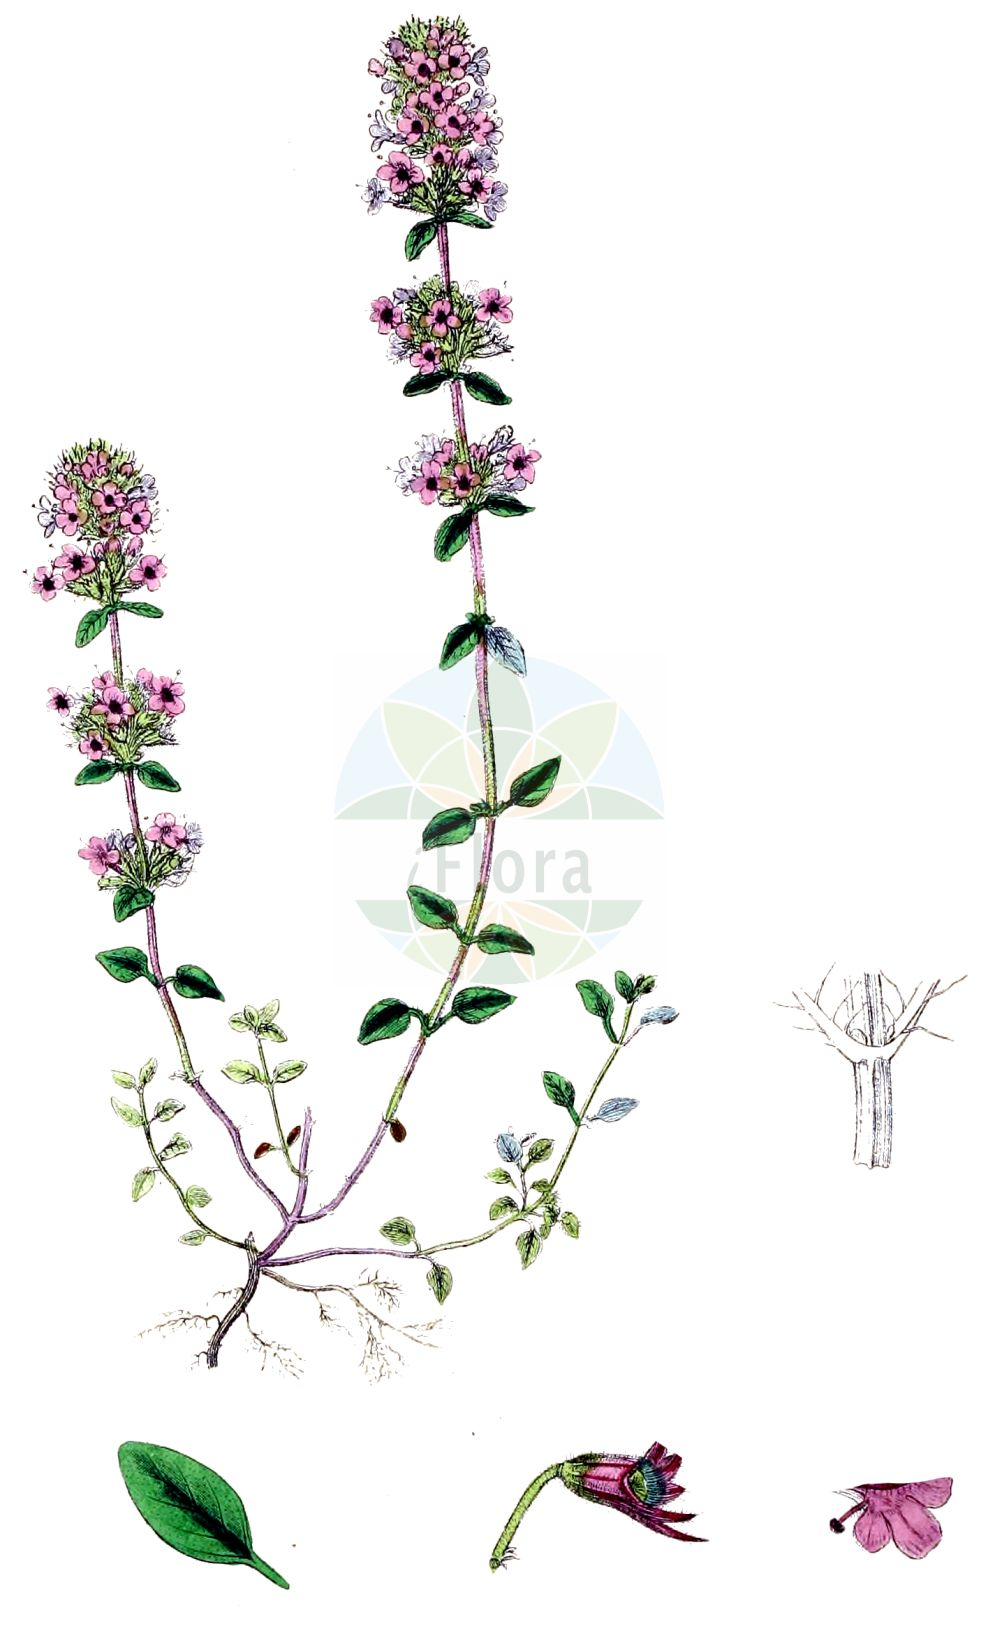 Historische Abbildung von Thymus alpestris (Hochgebirgs-Thymian - Wild Thyme). Das Bild zeigt Blatt, Bluete, Frucht und Same. ---- Historical Drawing of Thymus alpestris (Hochgebirgs-Thymian - Wild Thyme).The image is showing leaf, flower, fruit and seed.(Thymus alpestris,Hochgebirgs-Thymian,Wild Thyme,Thymus alpestris,Thymus subalpestris,Hochgebirgs-Thymian,Wild Thyme,Alpine Thyme,Thymus,Thymian,Thyme,Lamiaceae,Lippenbluetengewaechse,Lippenbluetler,Nettle family,Blatt,Bluete,Frucht,Same,leaf,flower,fruit,seed,Sowerby (1790-1813))